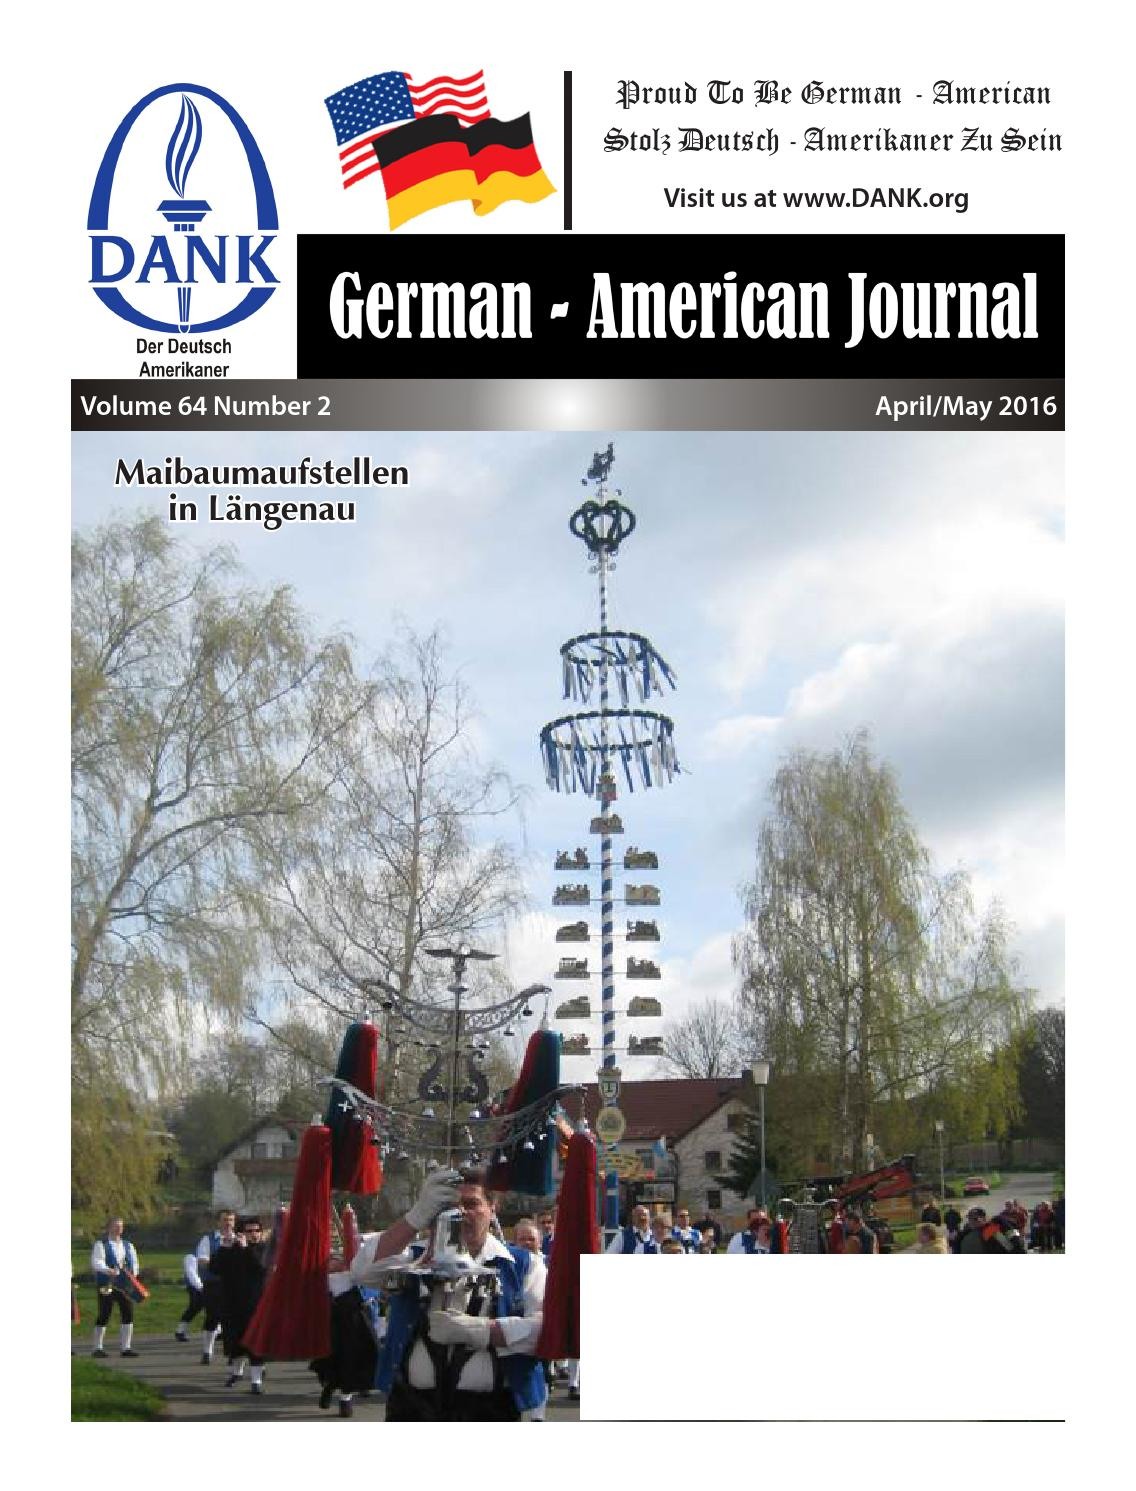 Hygiene In Der Küche Im Altenheim Dank Journal Apr May 2016 By Dank Journal Issuu